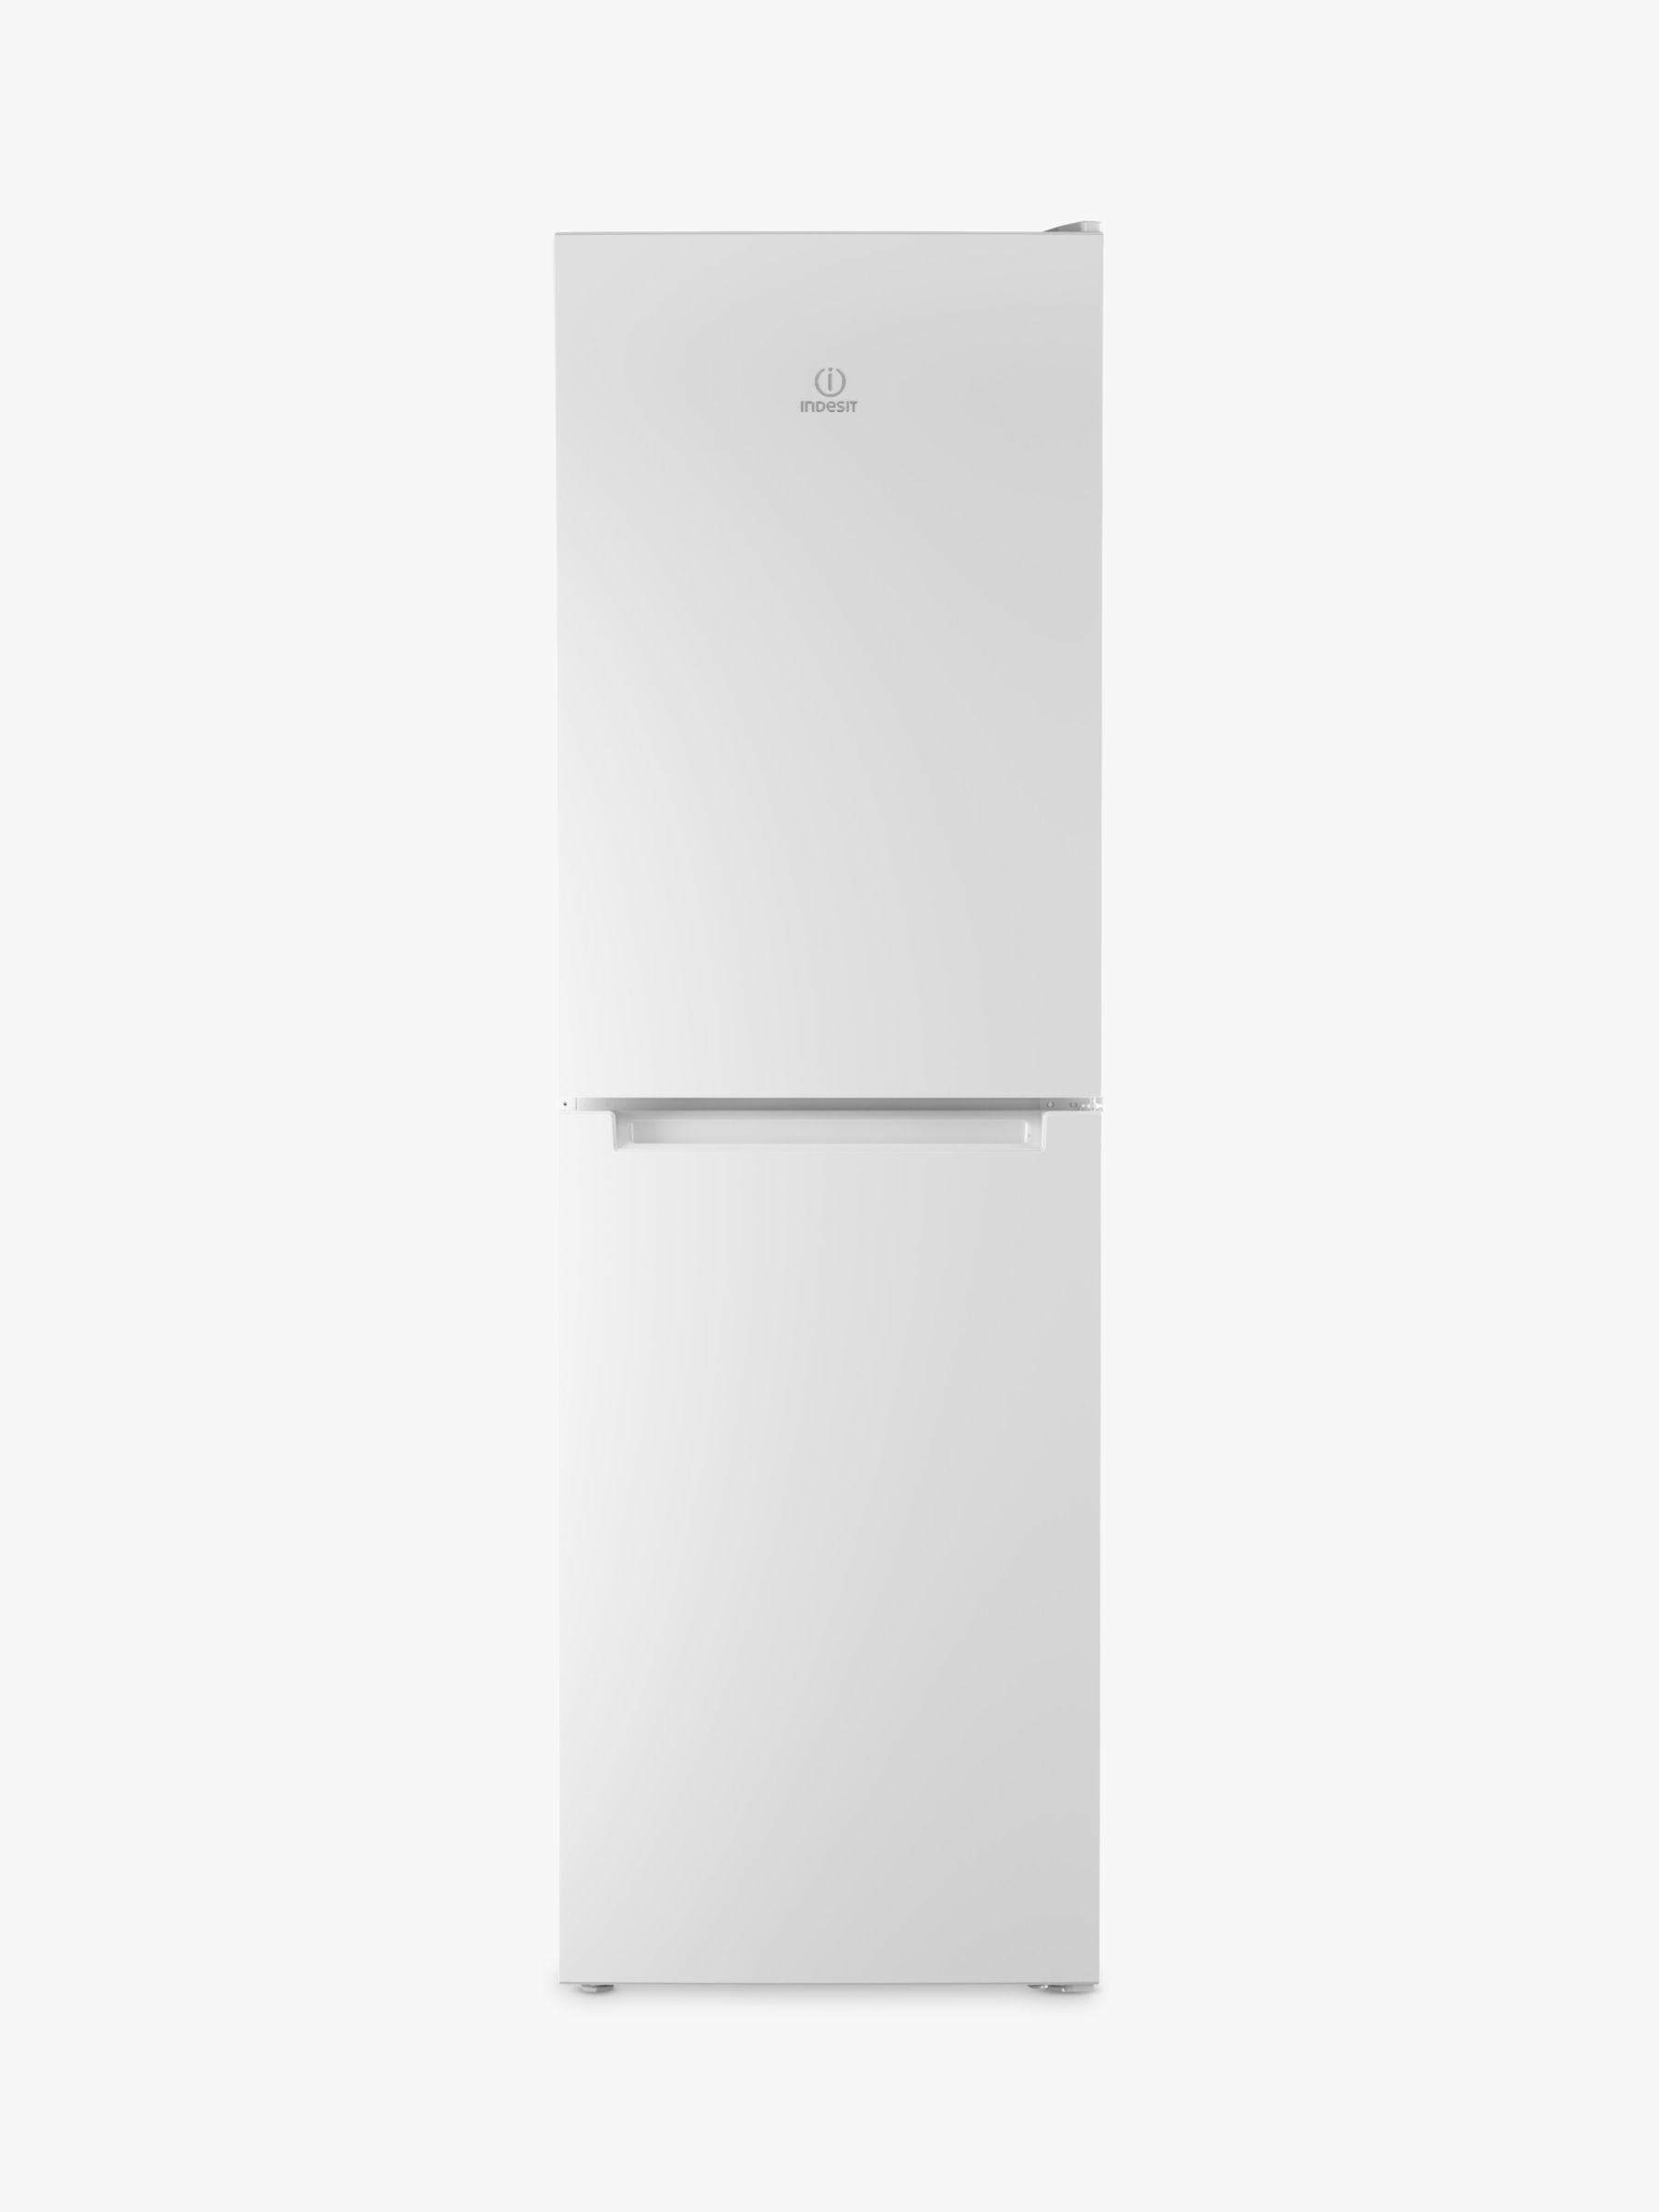 Indesit Indesit LD85 F1 W Freestanding Fridge Freezer A+ Energy Rating, 59.6cm Wide, White